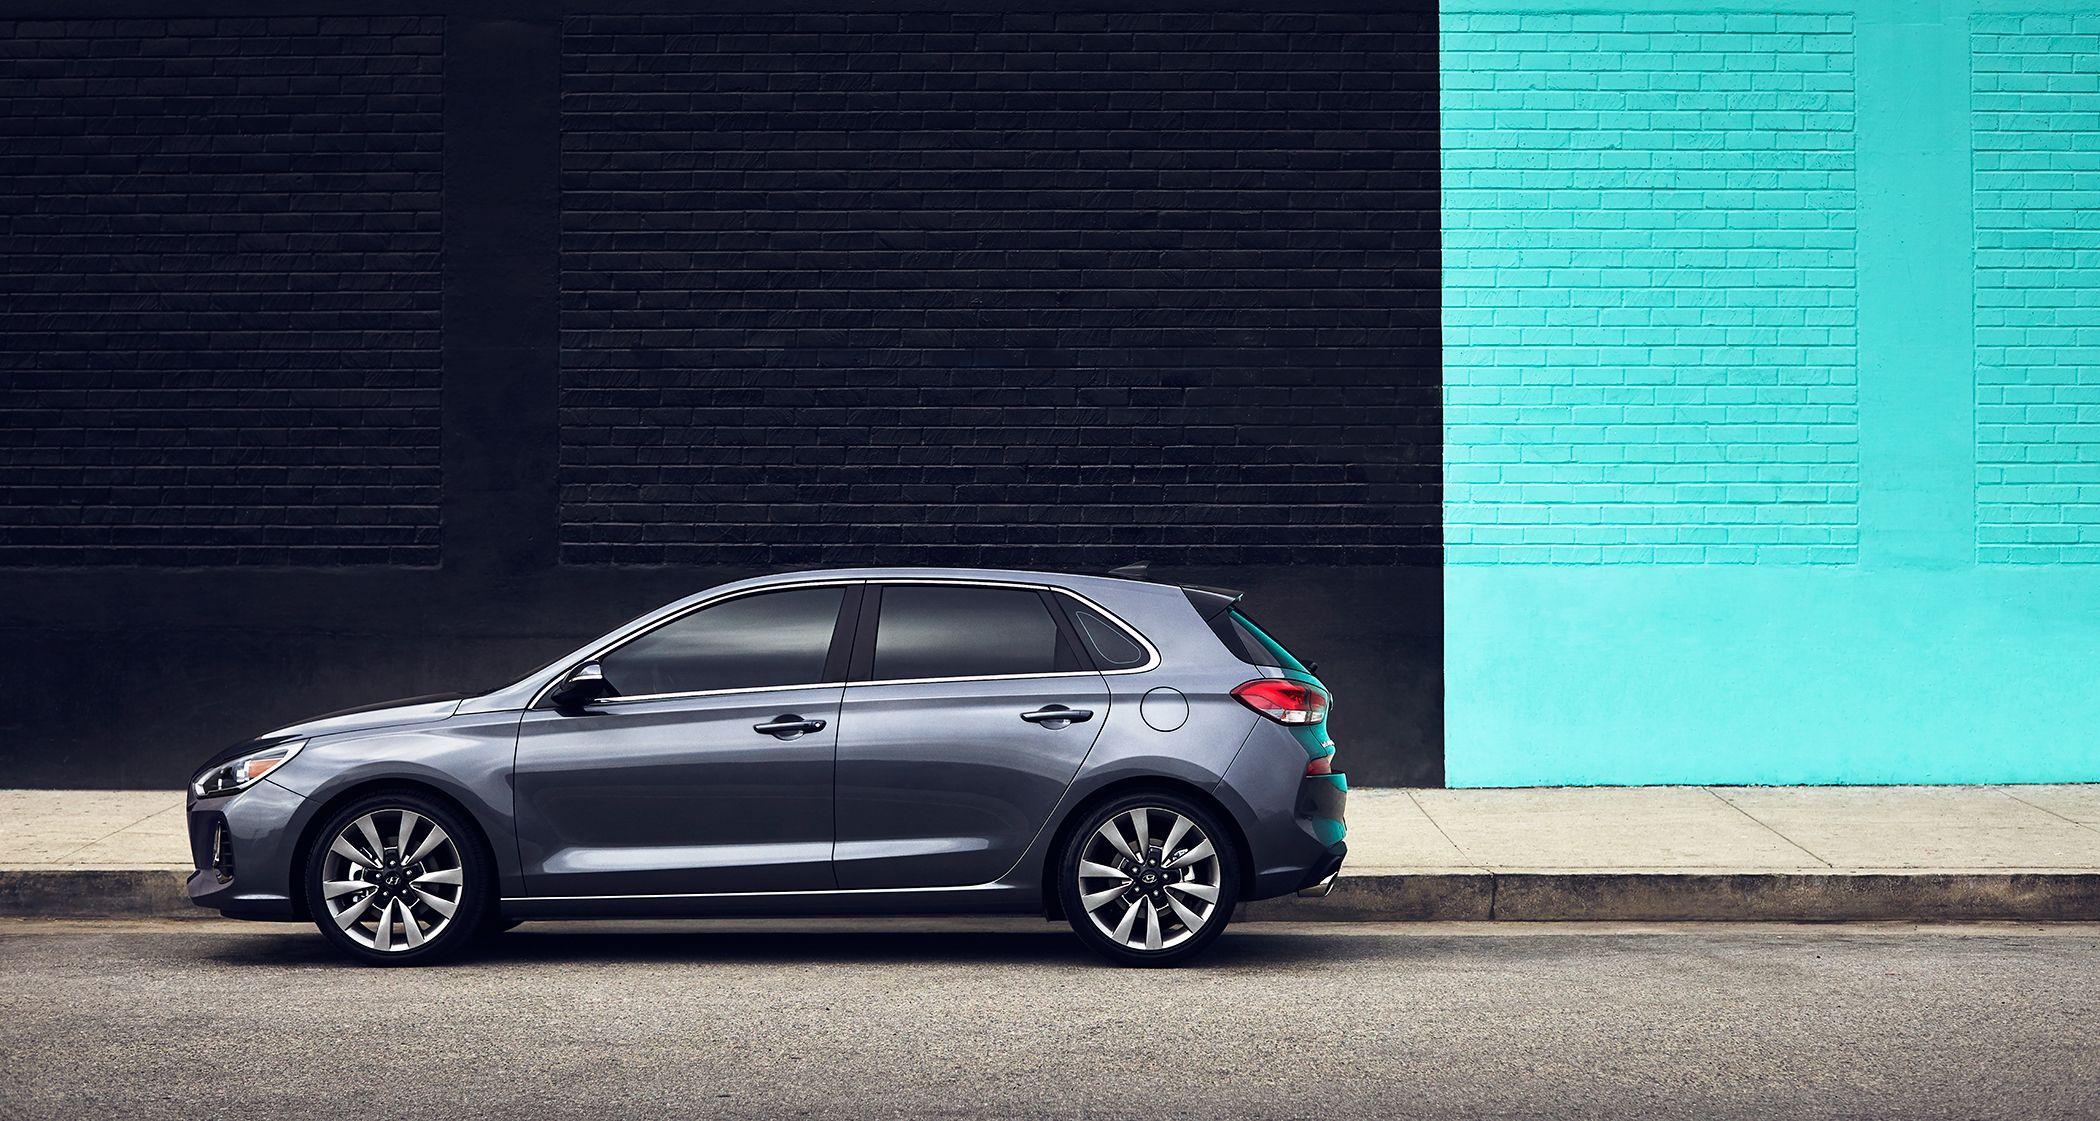 Drive confidently knowing that the 2018 Hyundai Elantra GT and Sport